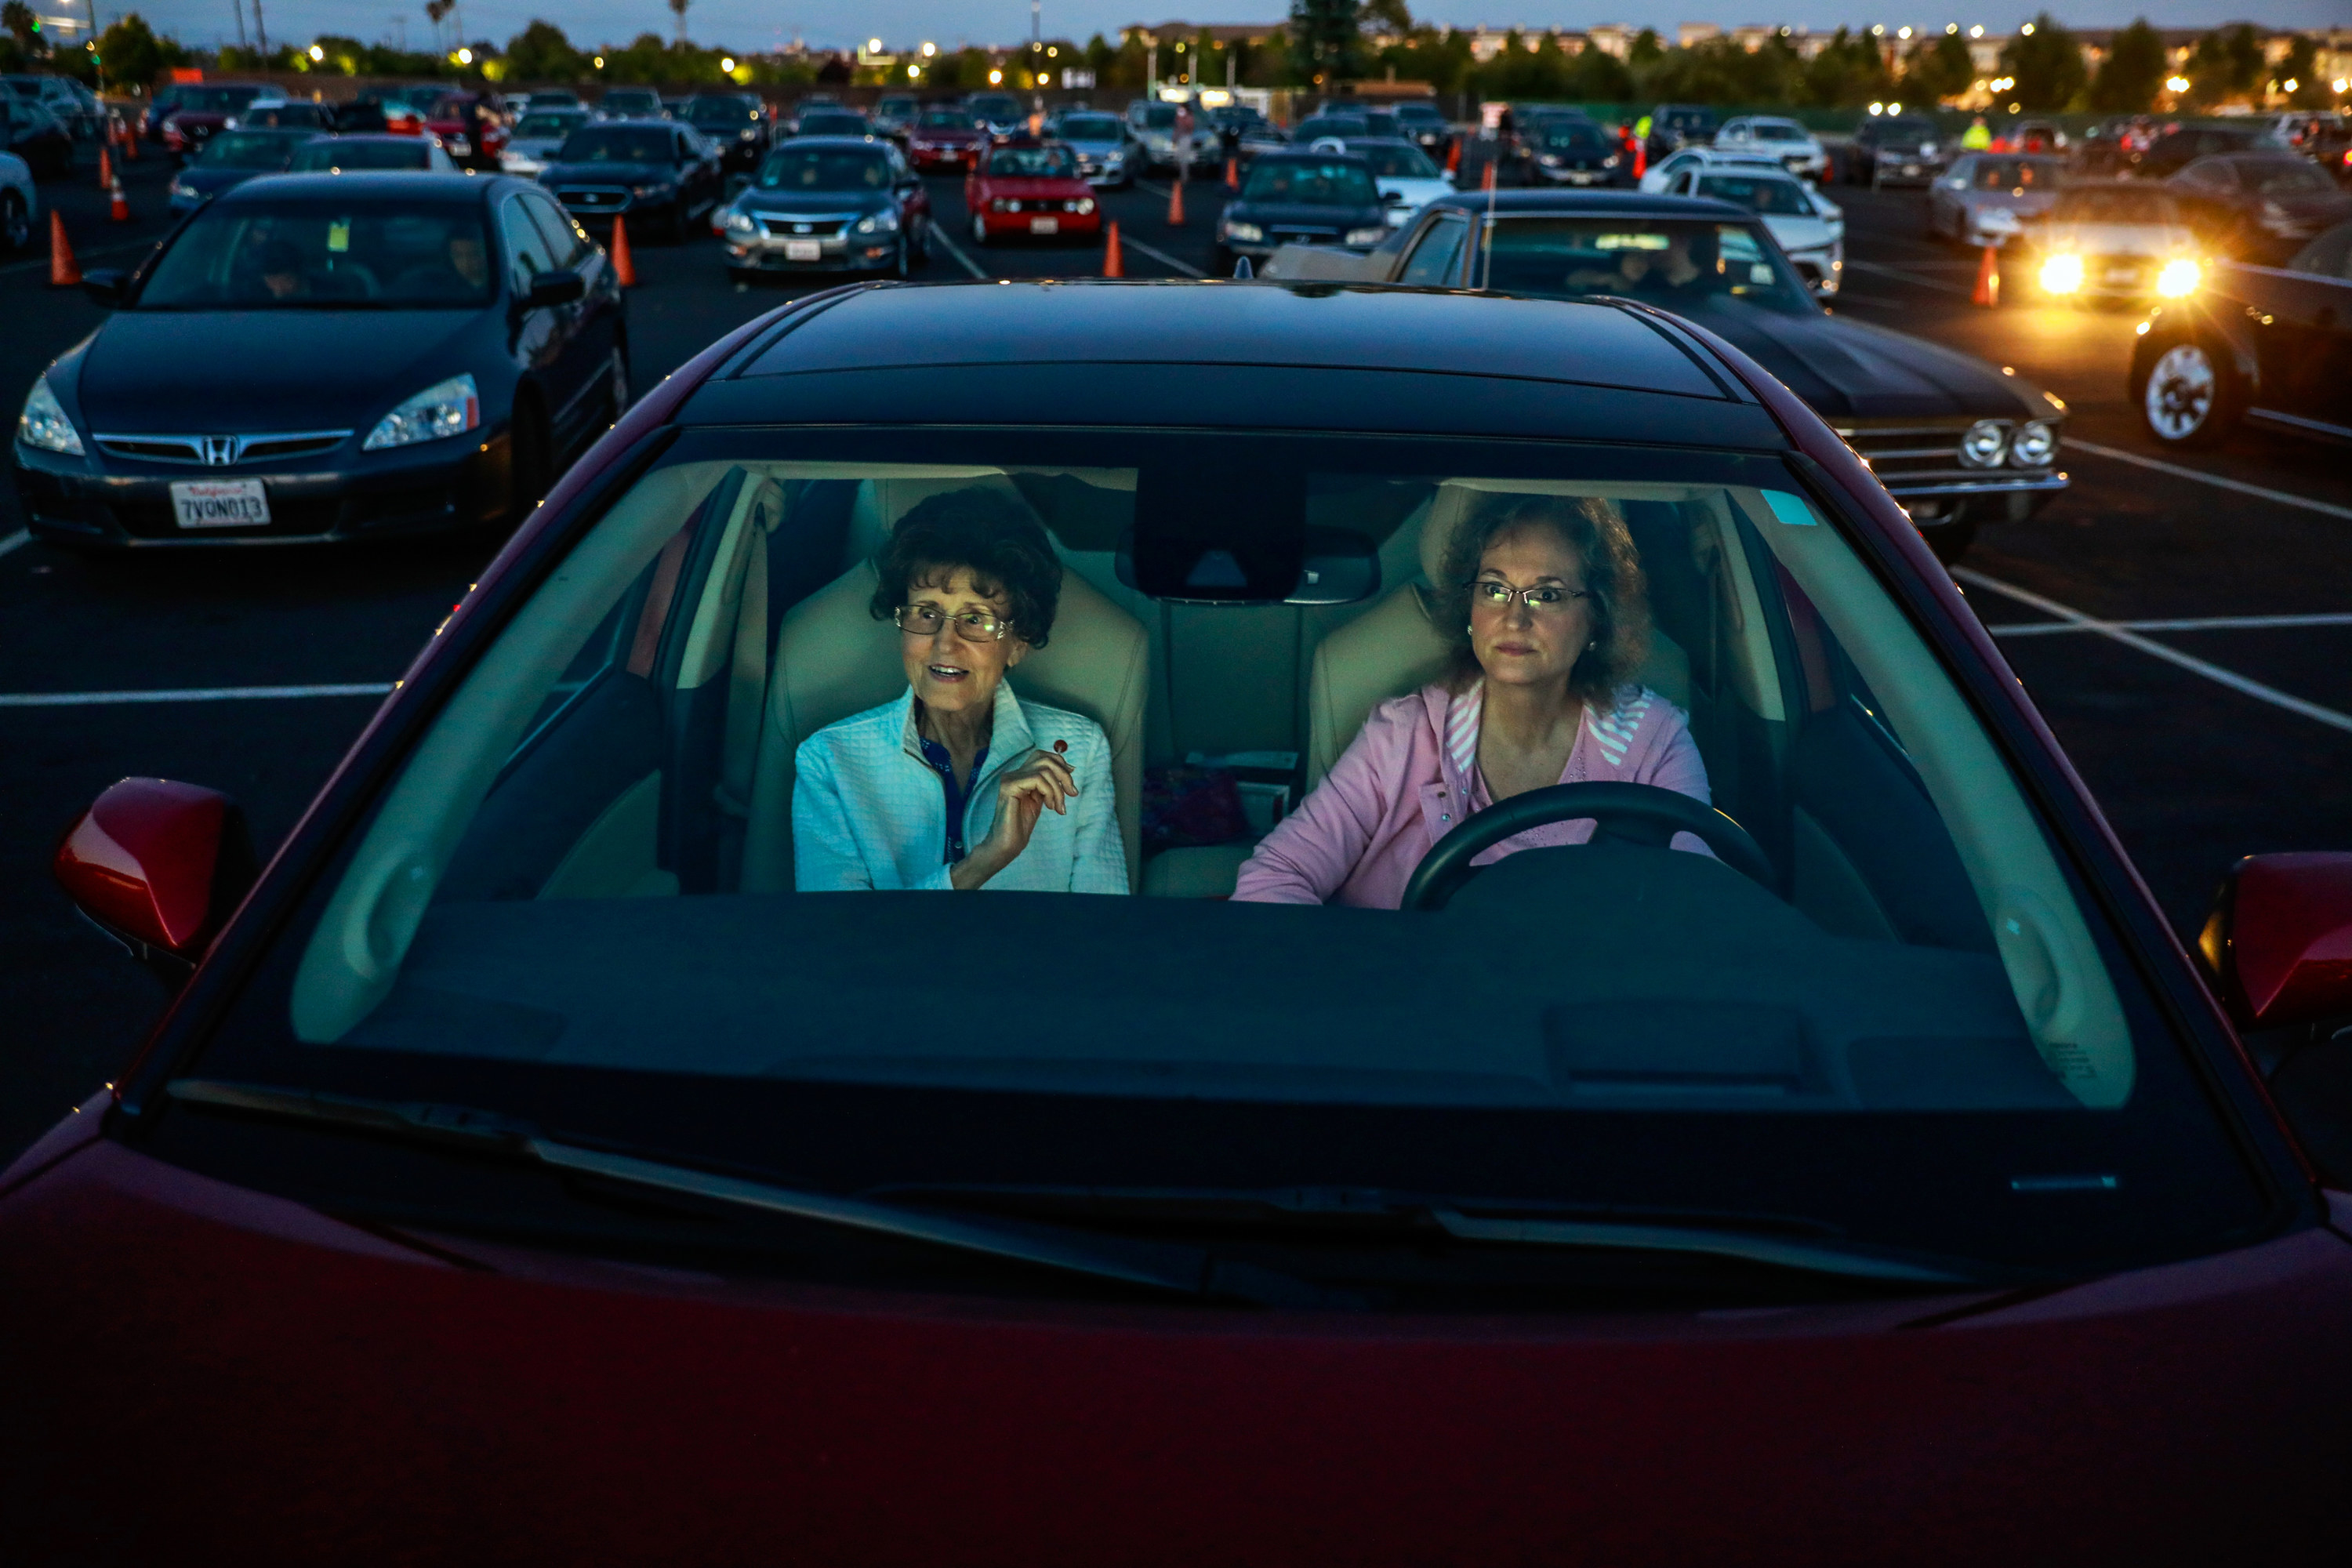 Two women in a car in a drive-in movie theater parking lot